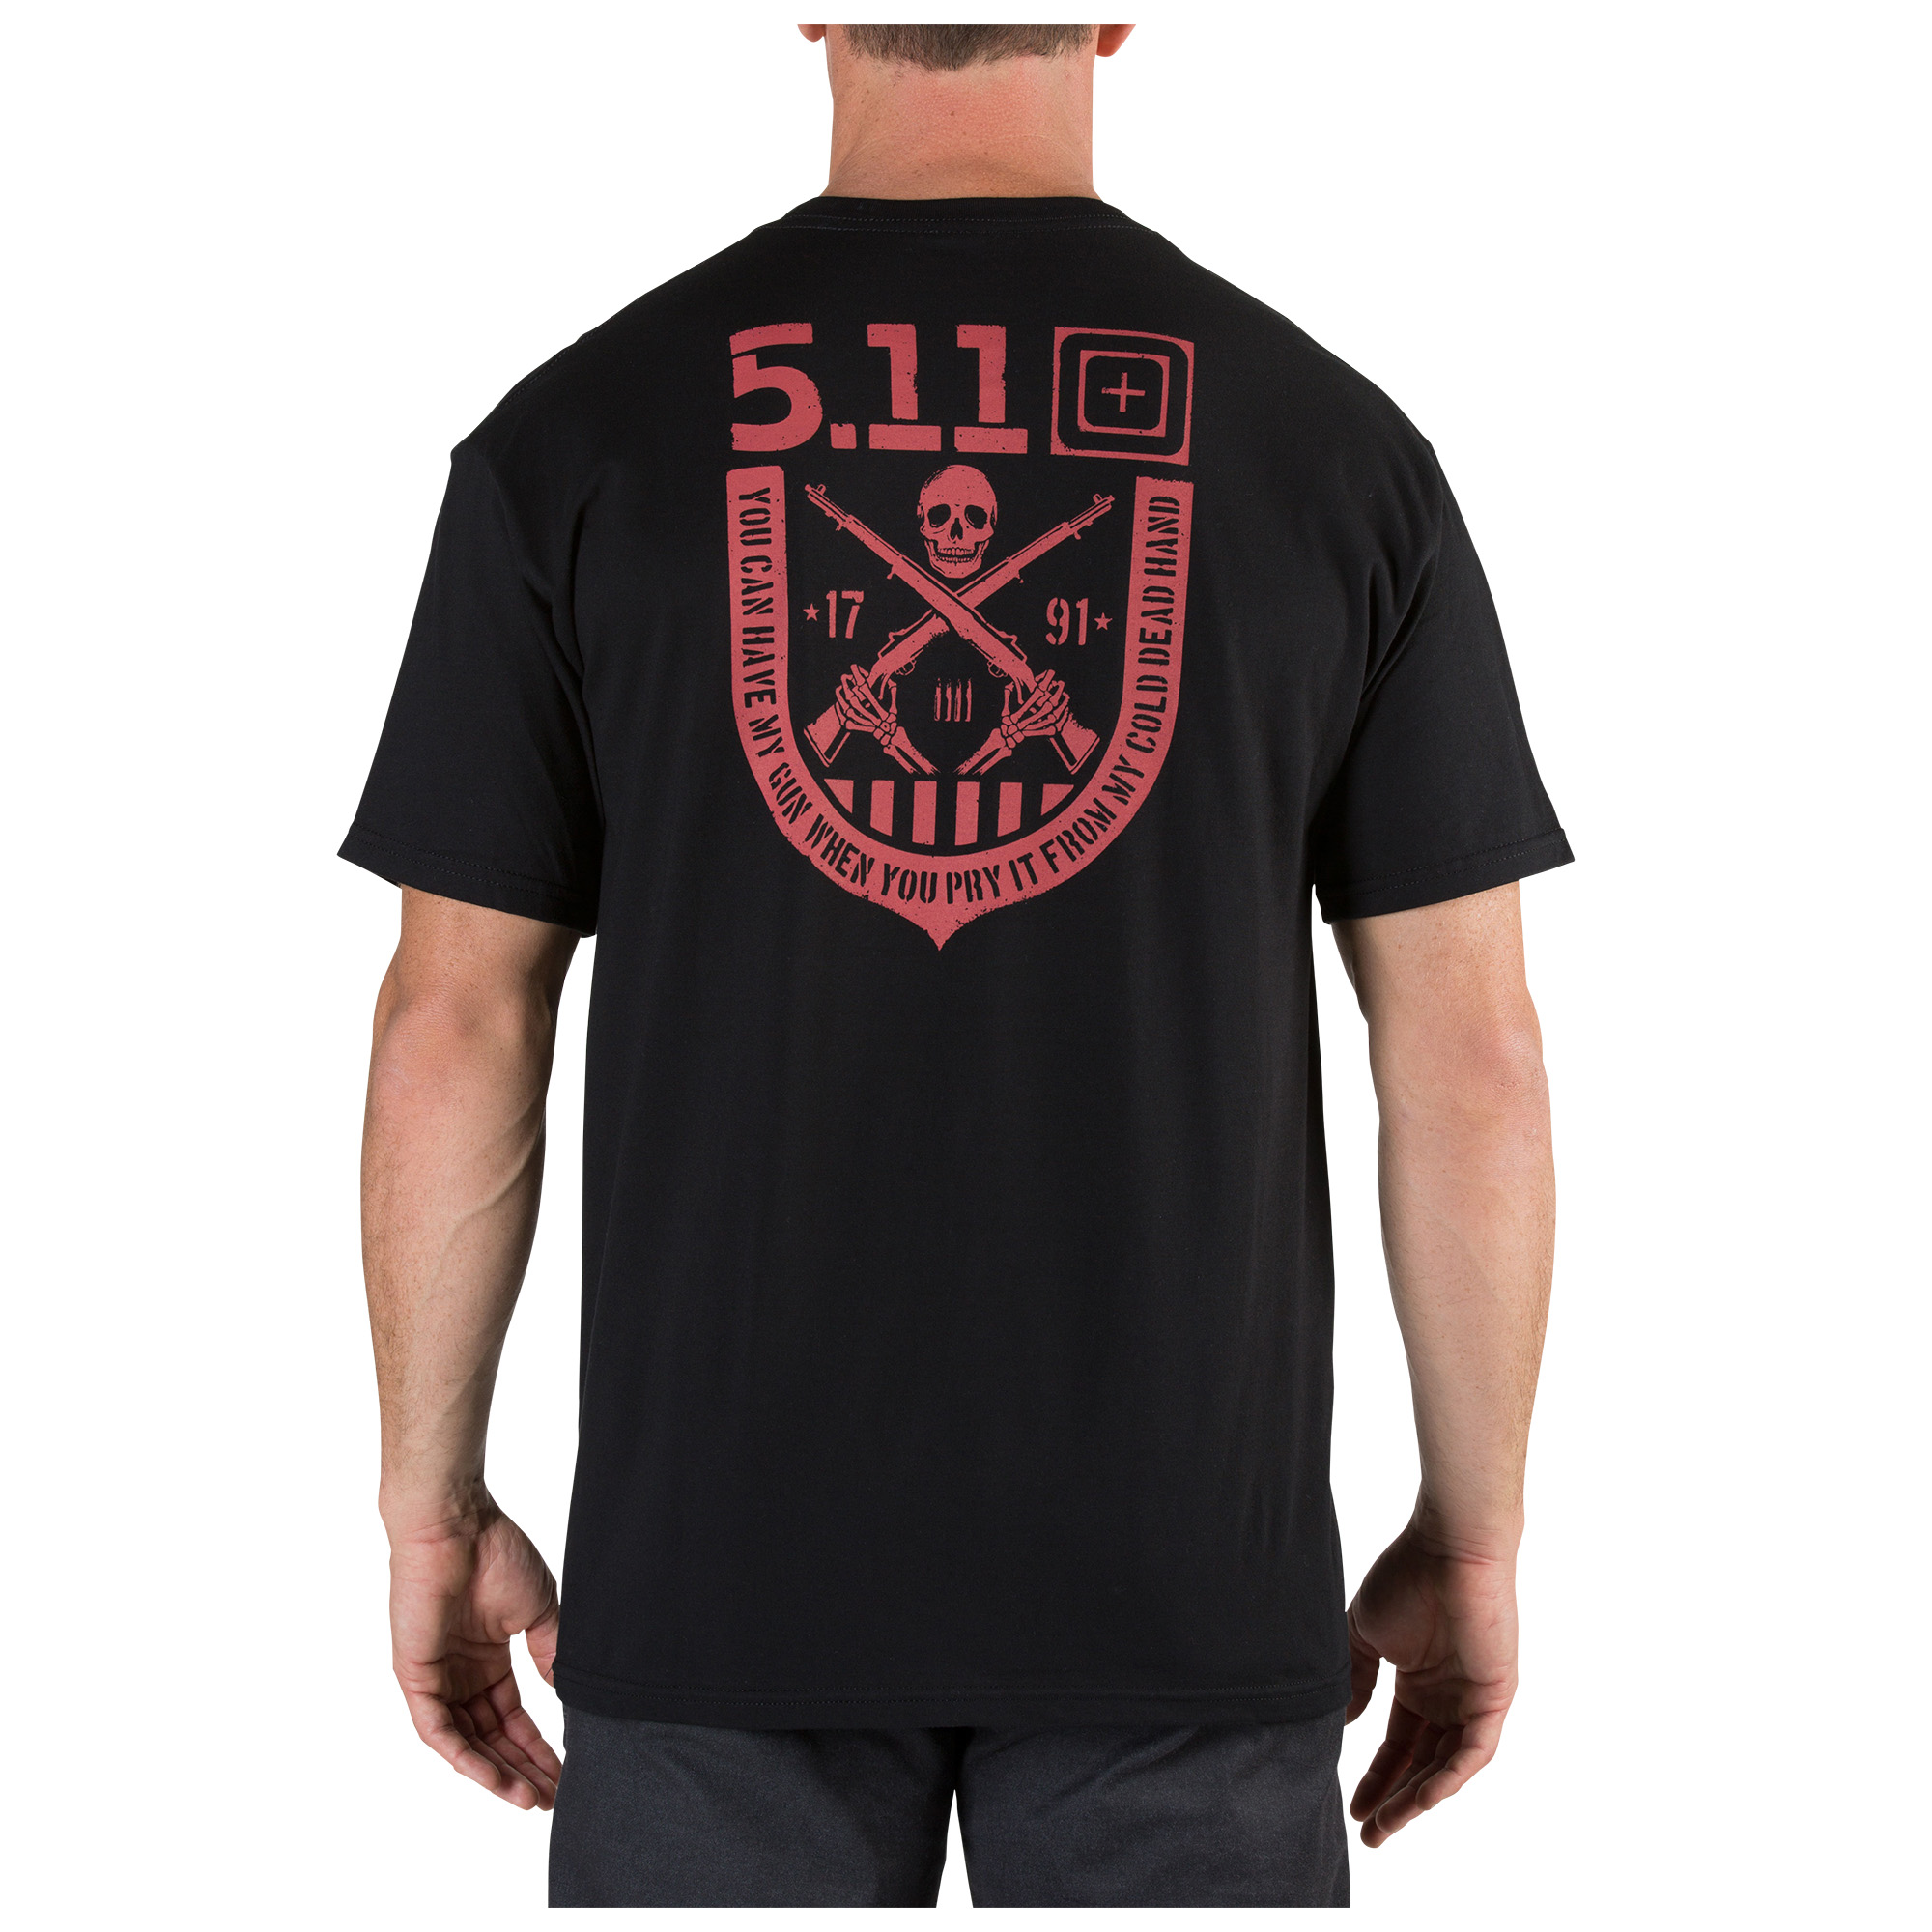 1801 Tee; Black 100% Cotton; Charcoal 50/50